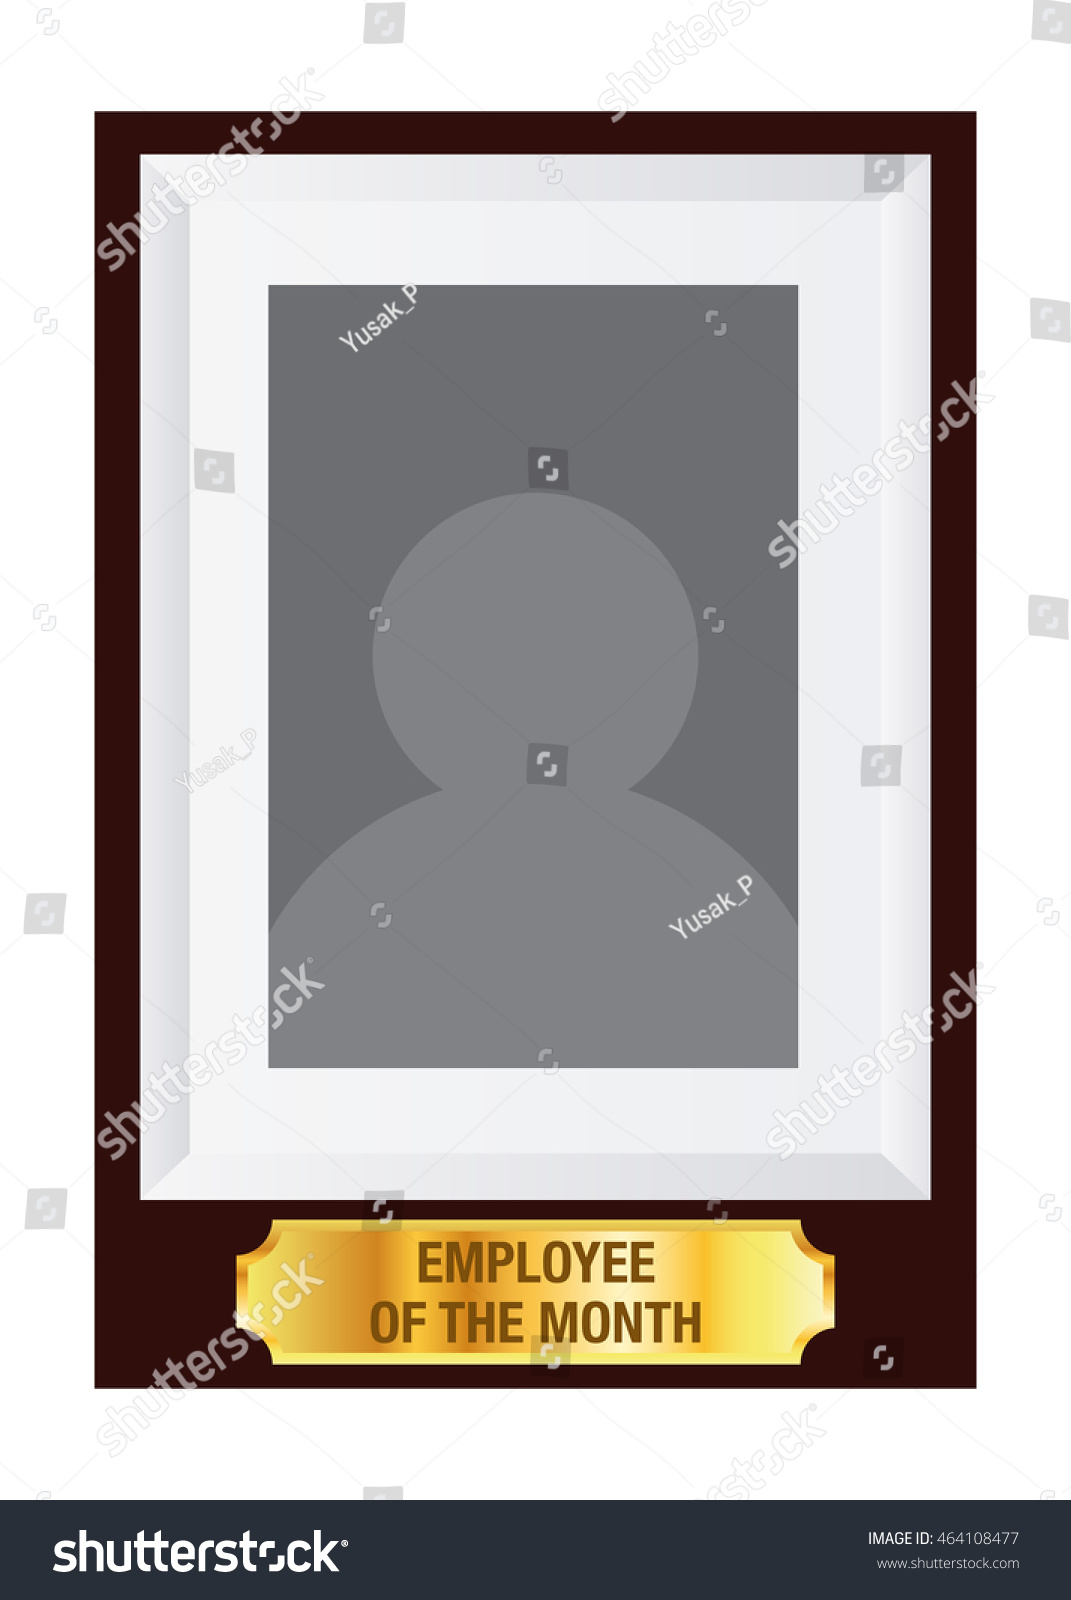 Vector Stock Of Employee The Month Award Photo Frame Template